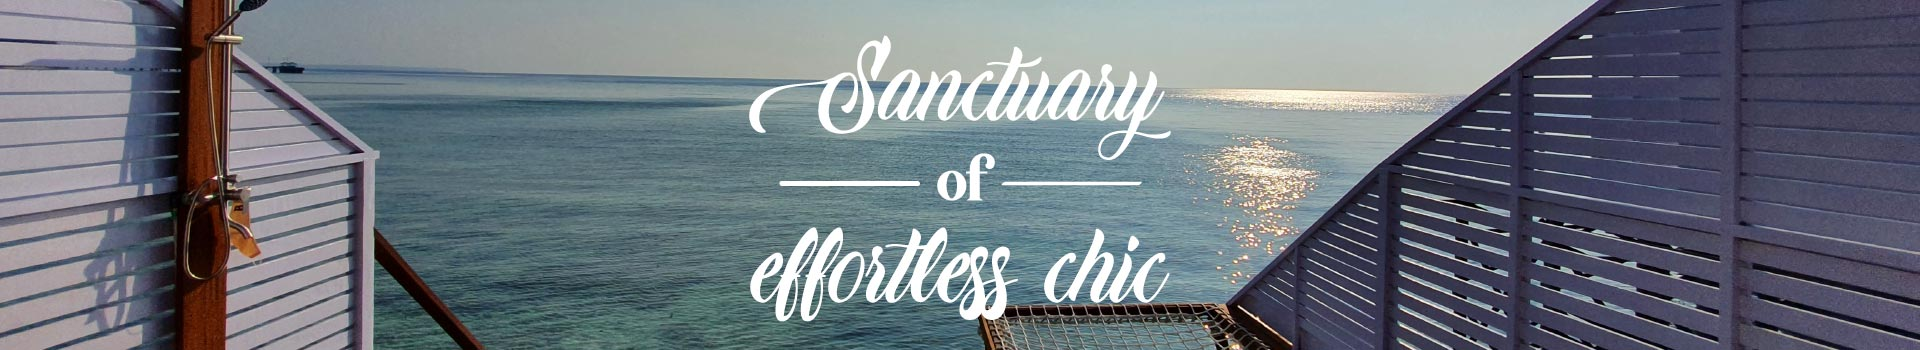 Sanctuary of effortless chic